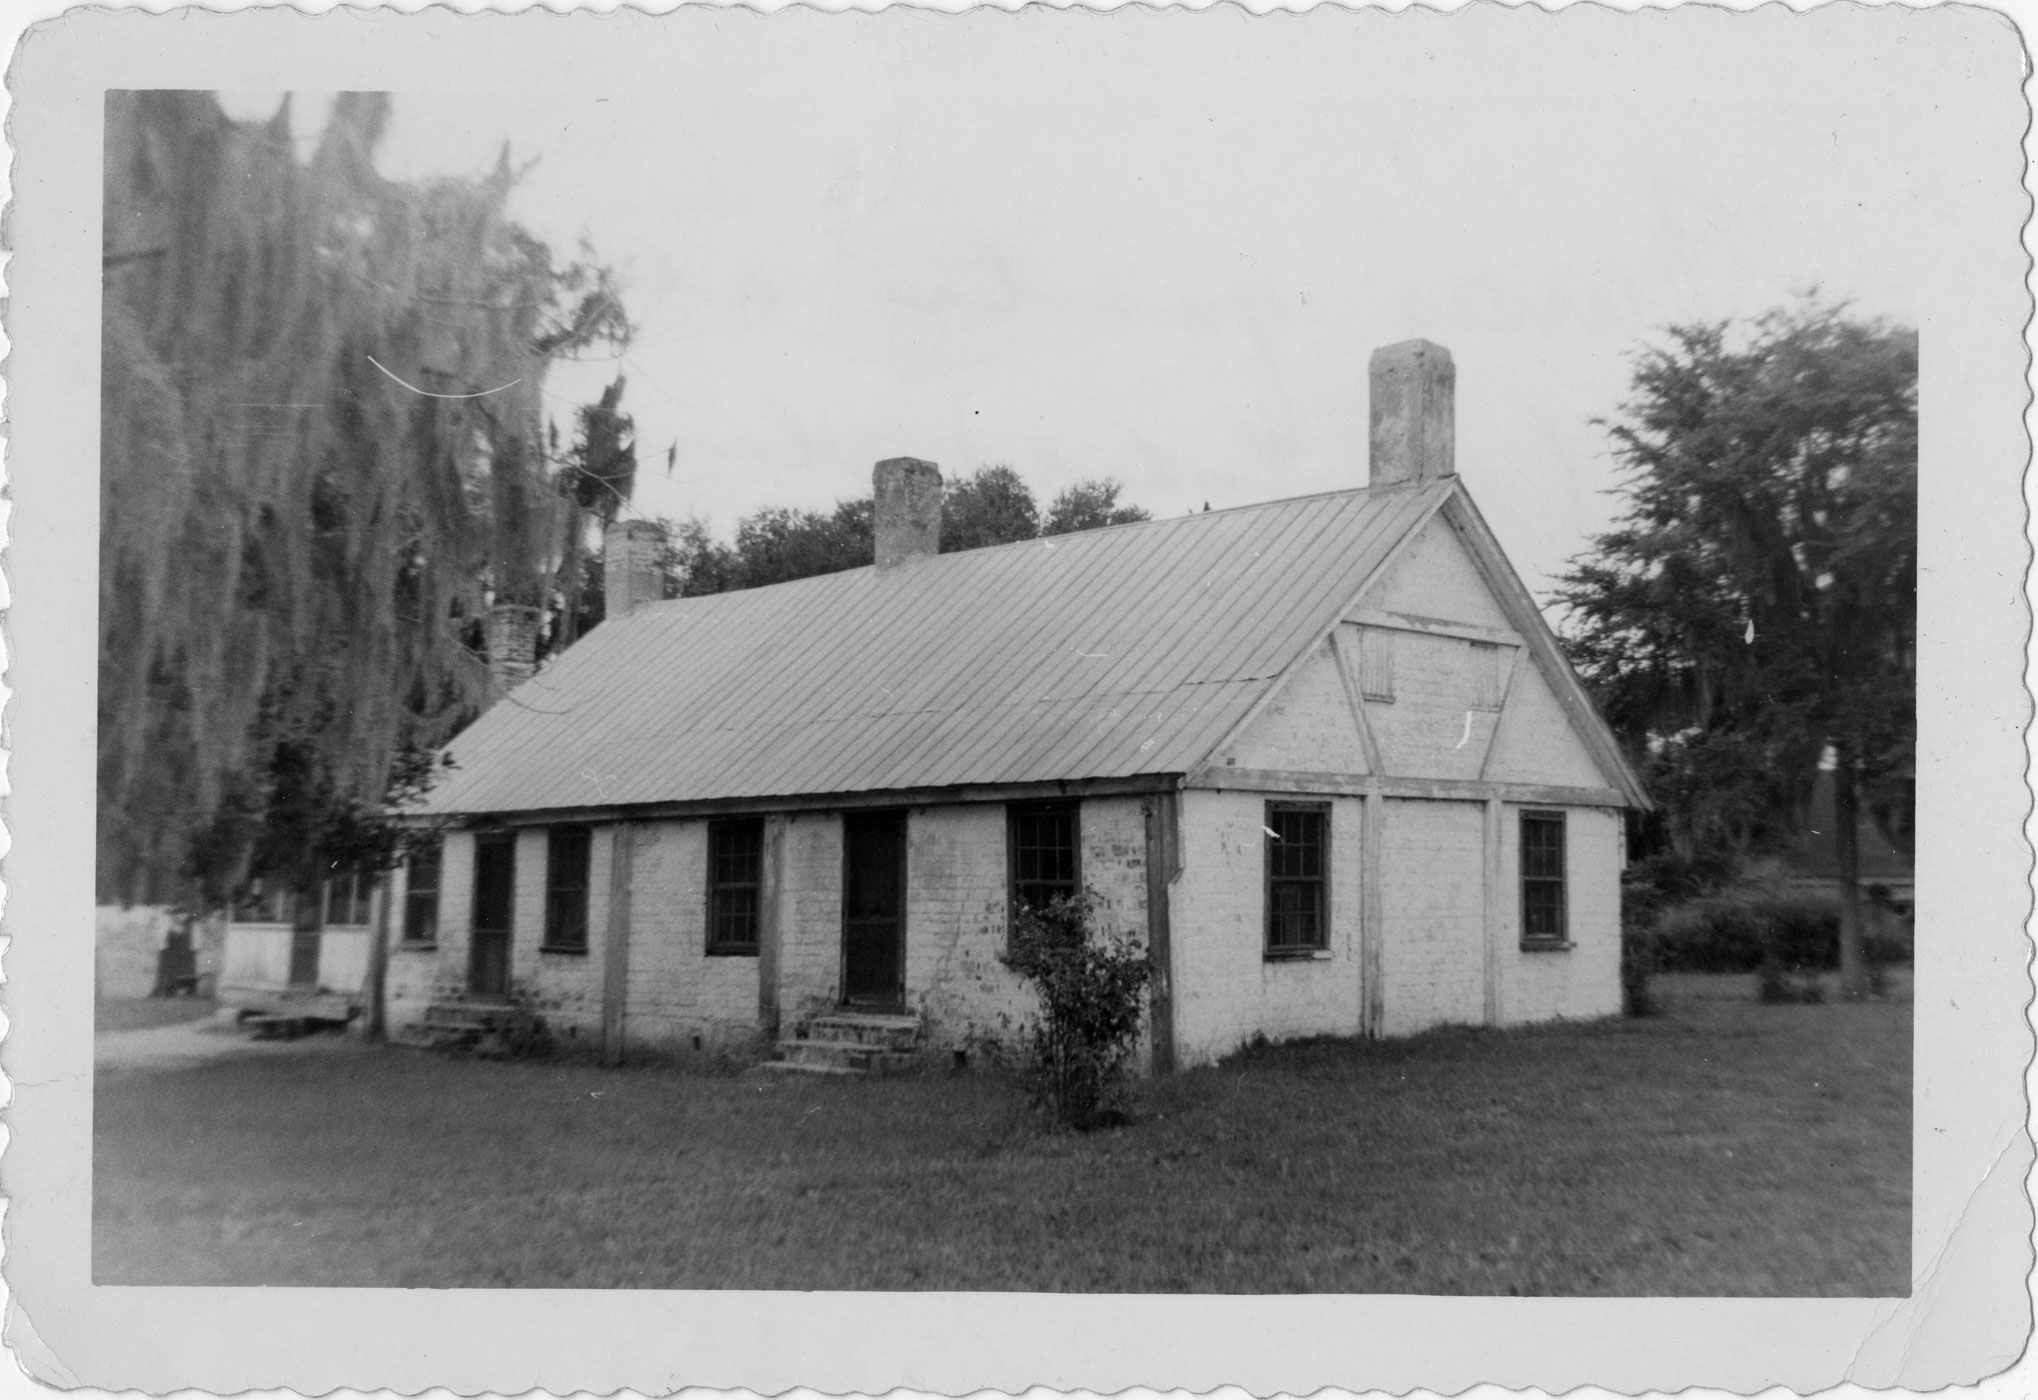 Nurses quarters attached to (demolished) slave quarters on New Port Plantation Combehee [sic] River